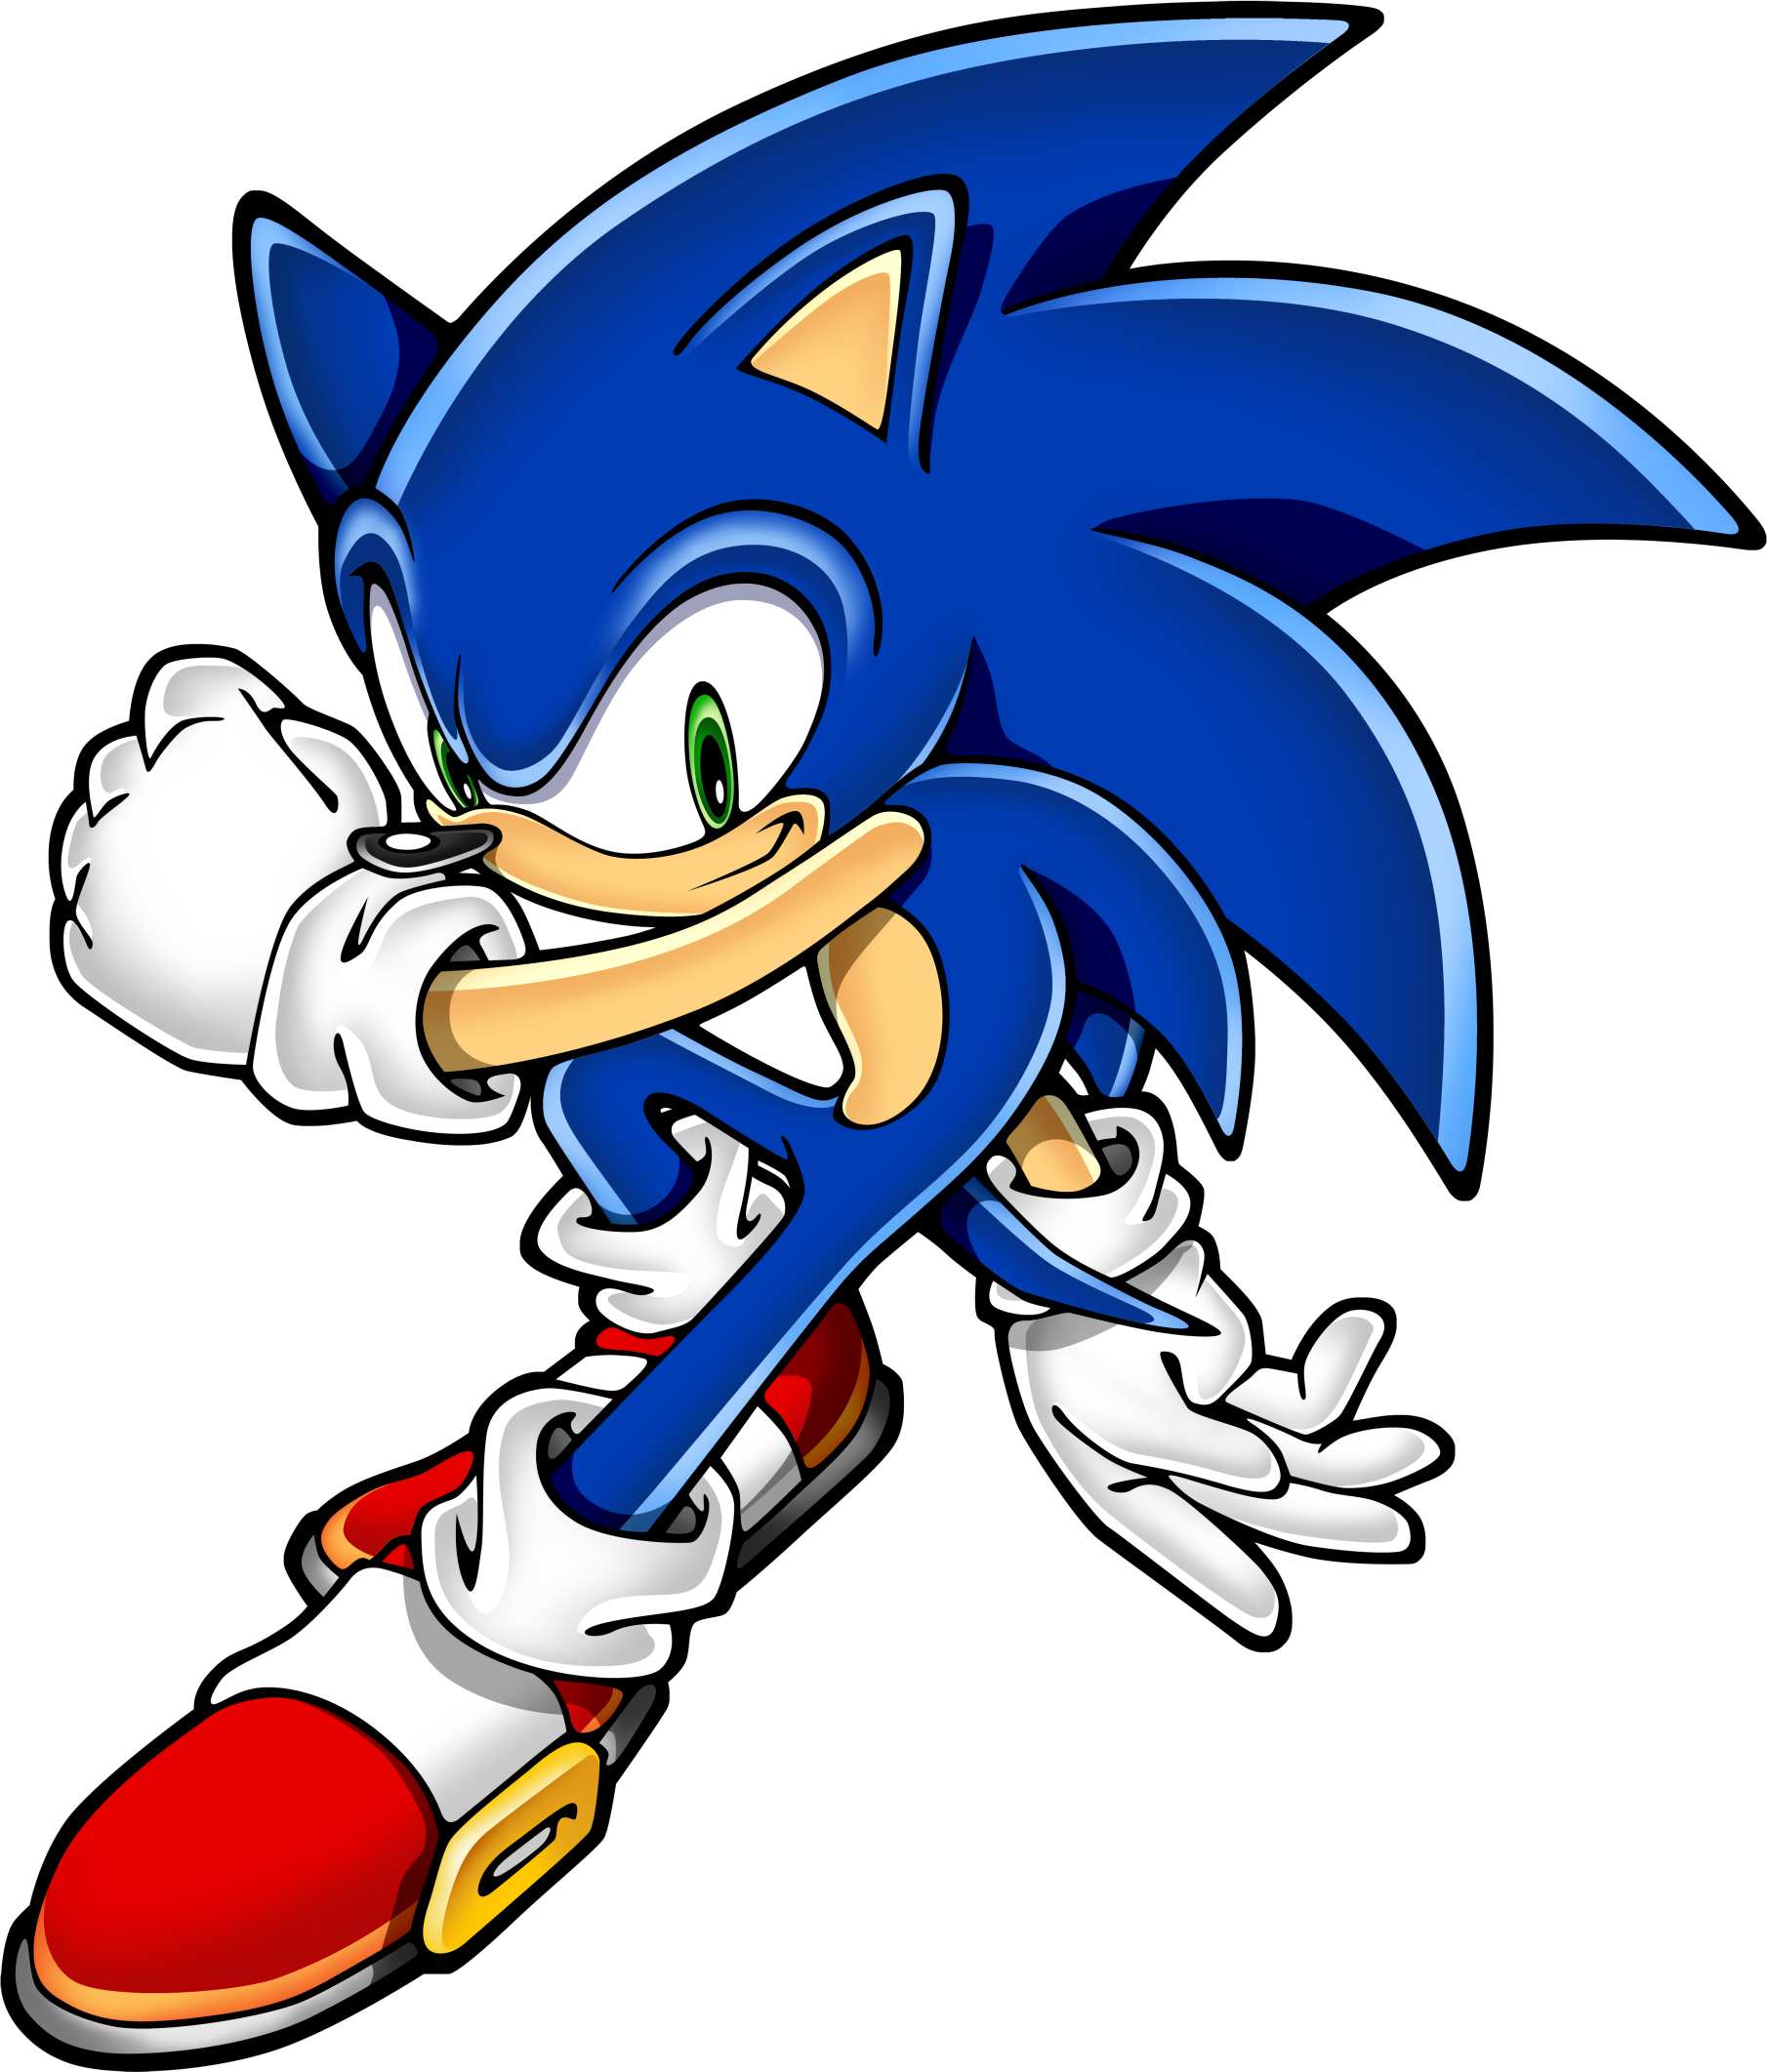 Art assets dvd the. Youtube clipart sonic